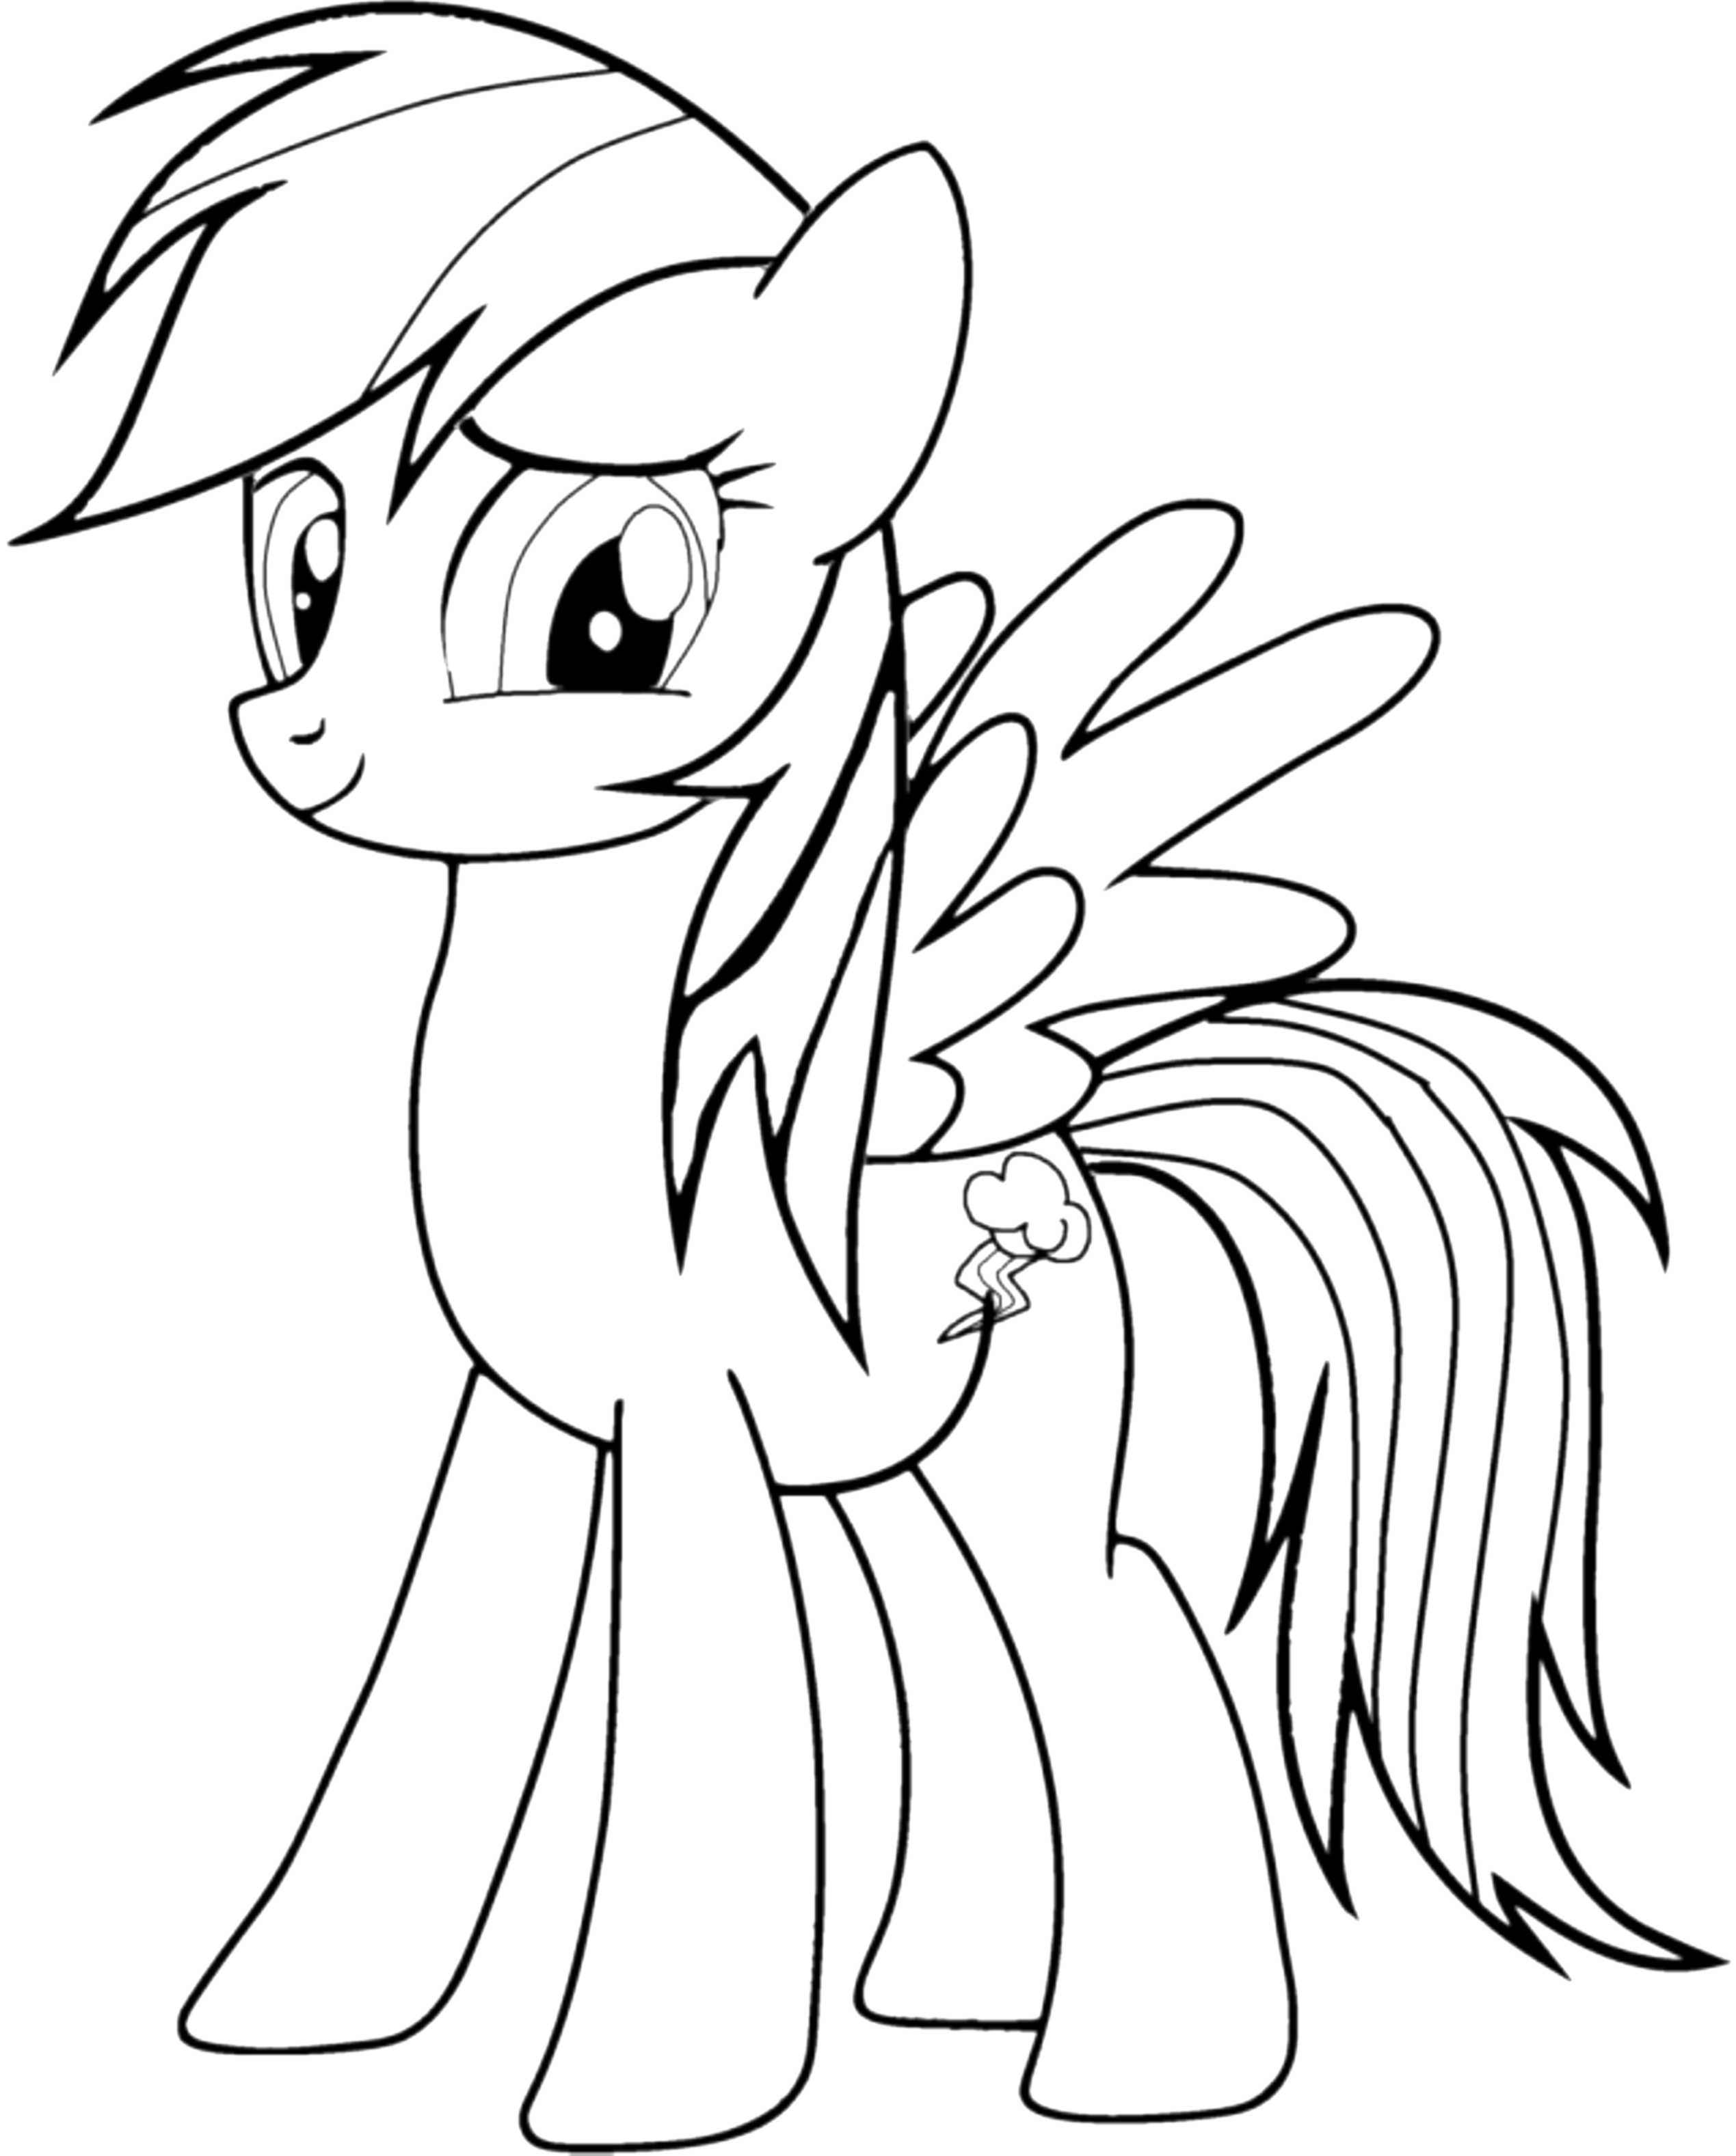 Rainbow dash coloring pages best coloring pages for kids for Coloring pages t